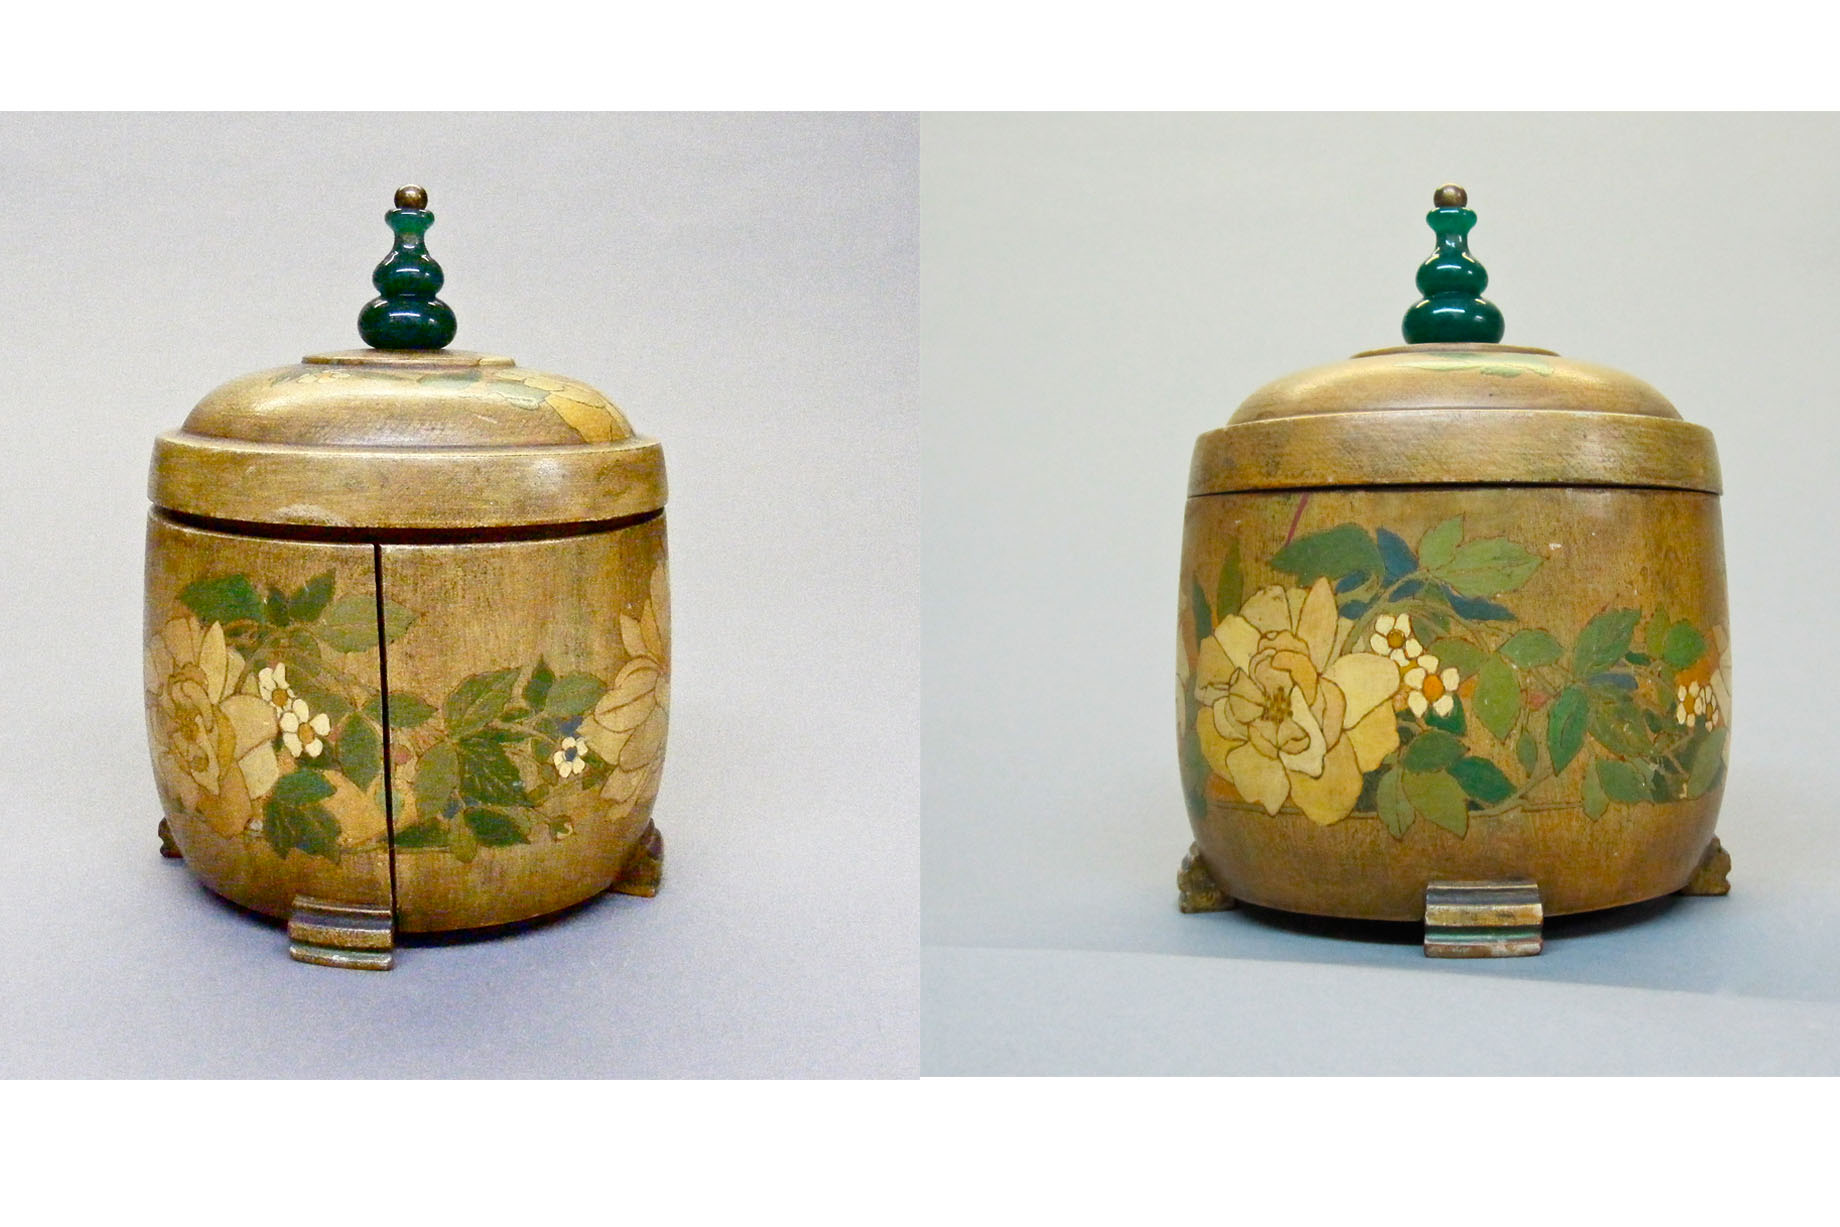 Restoration of Wooden Jar. Arts and Crafts Movement. Arthur and Lucia Mathews.